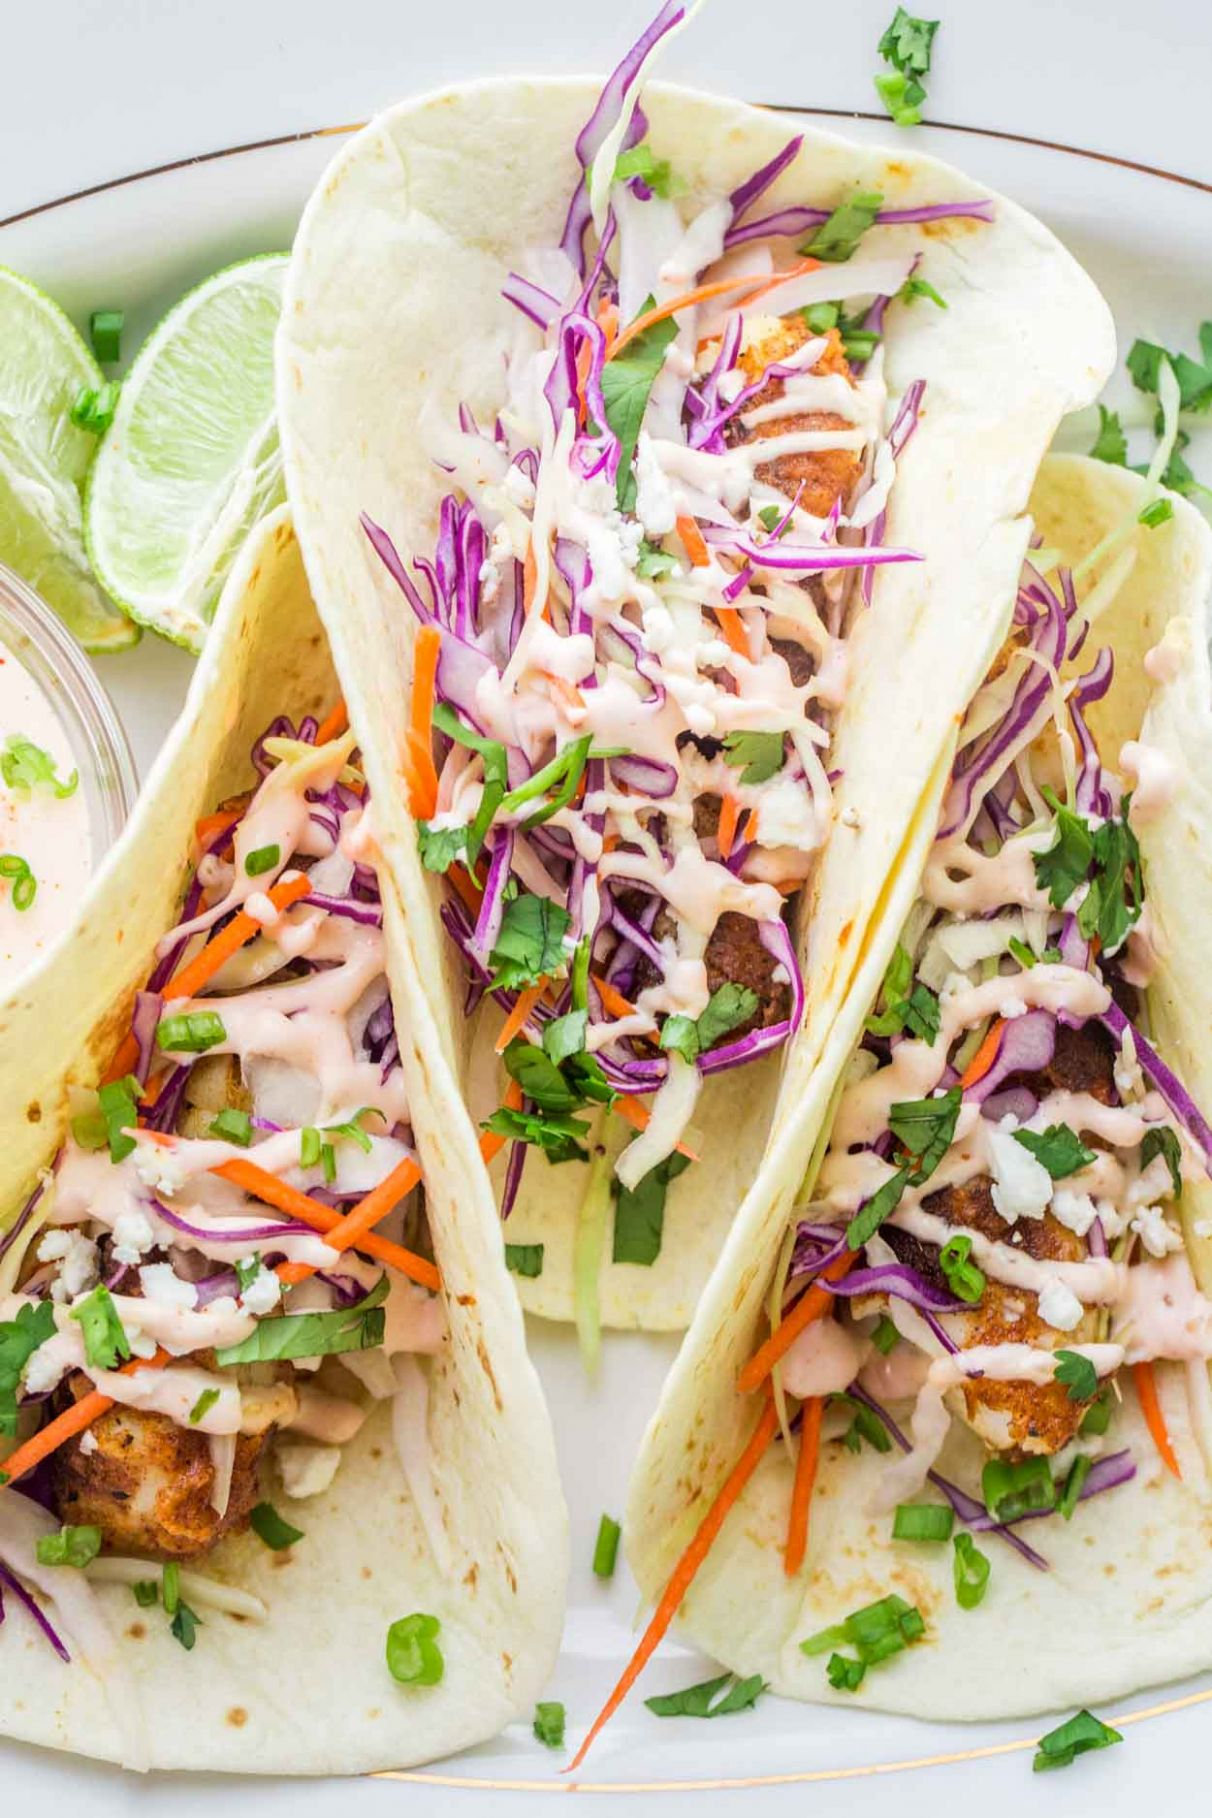 Easy Fish Taco Recipe - Recipe Fish Tacos Slaw